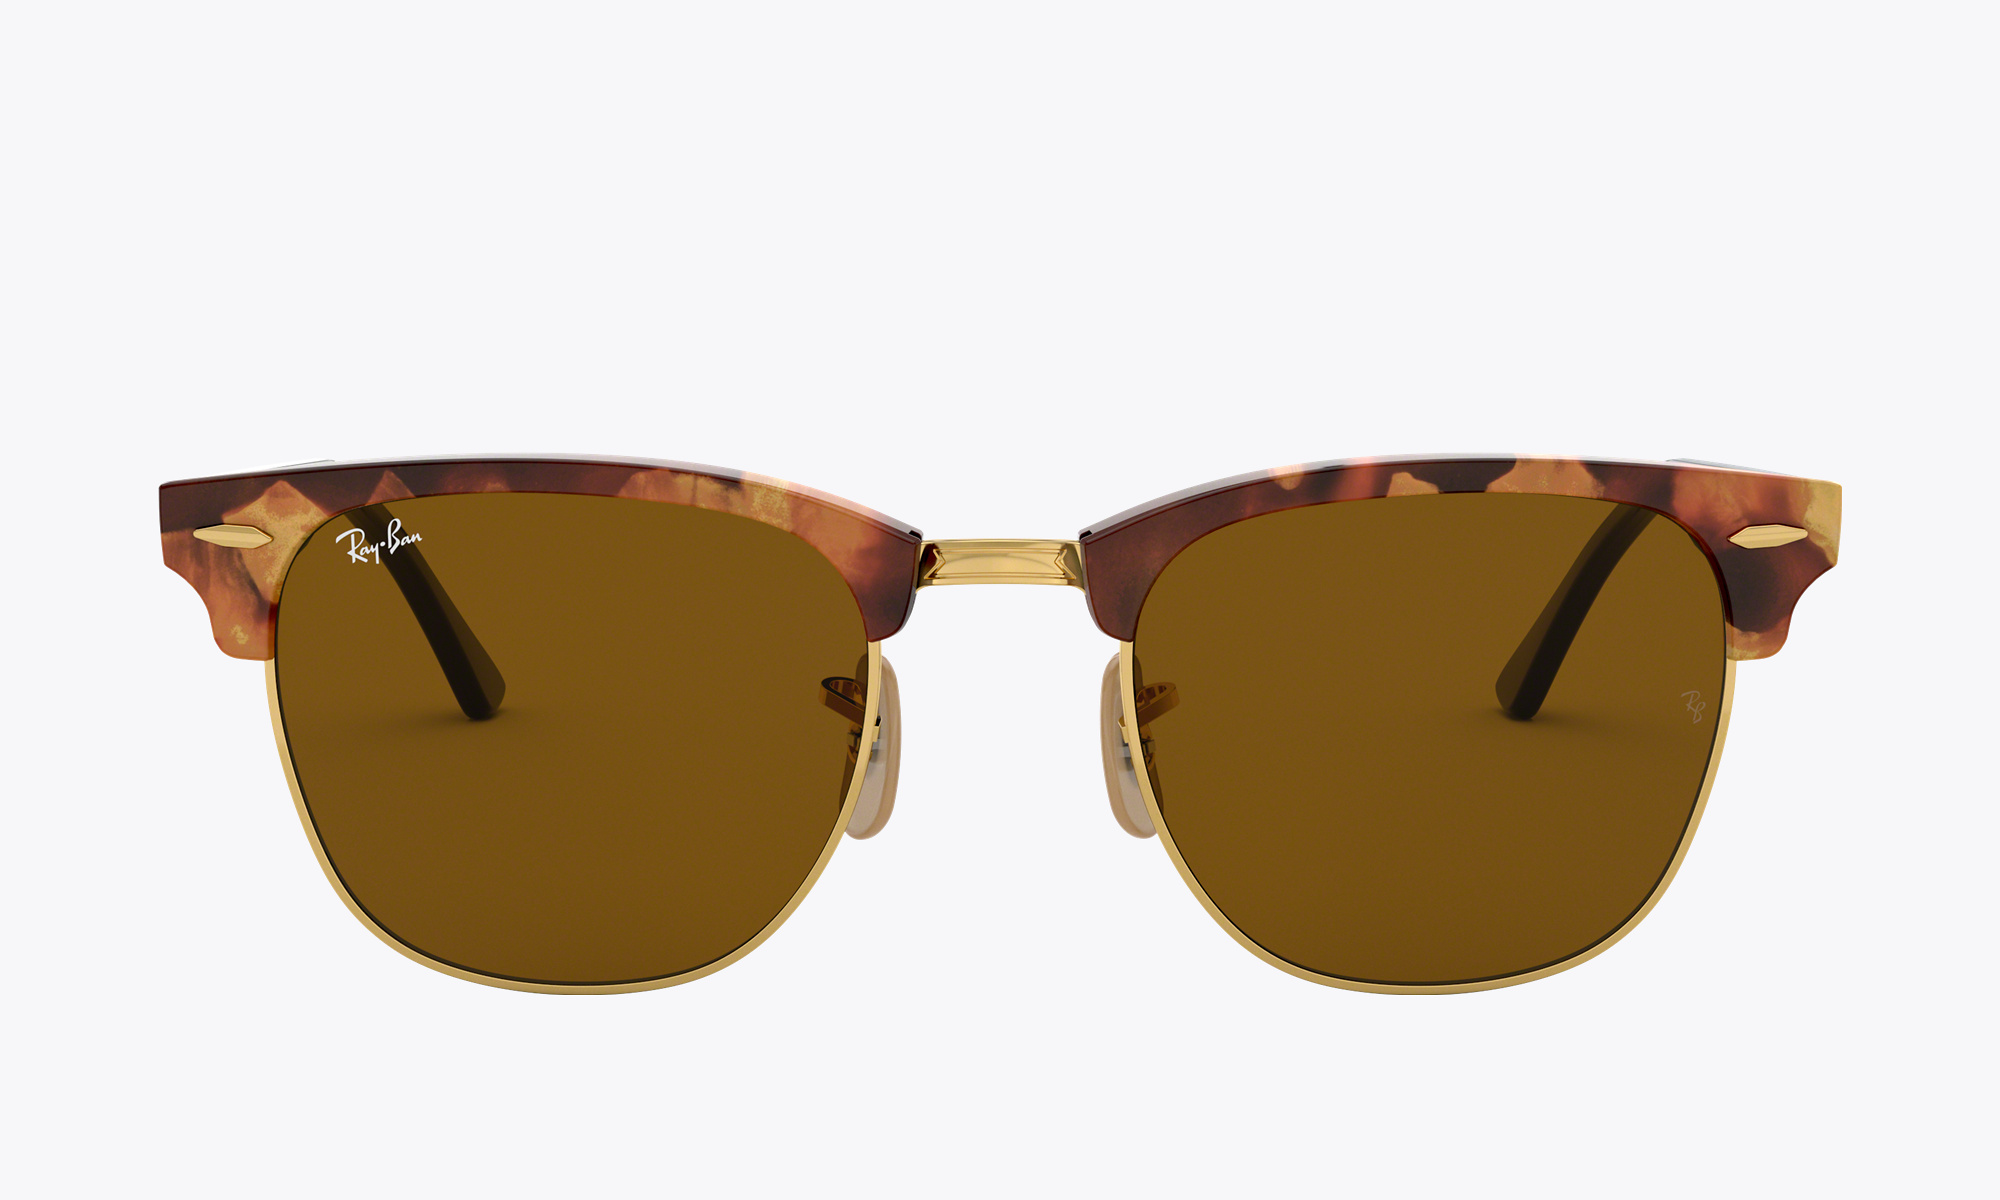 Image of Ray-Ban CLUBMASTER CLASSIC color Tortoise